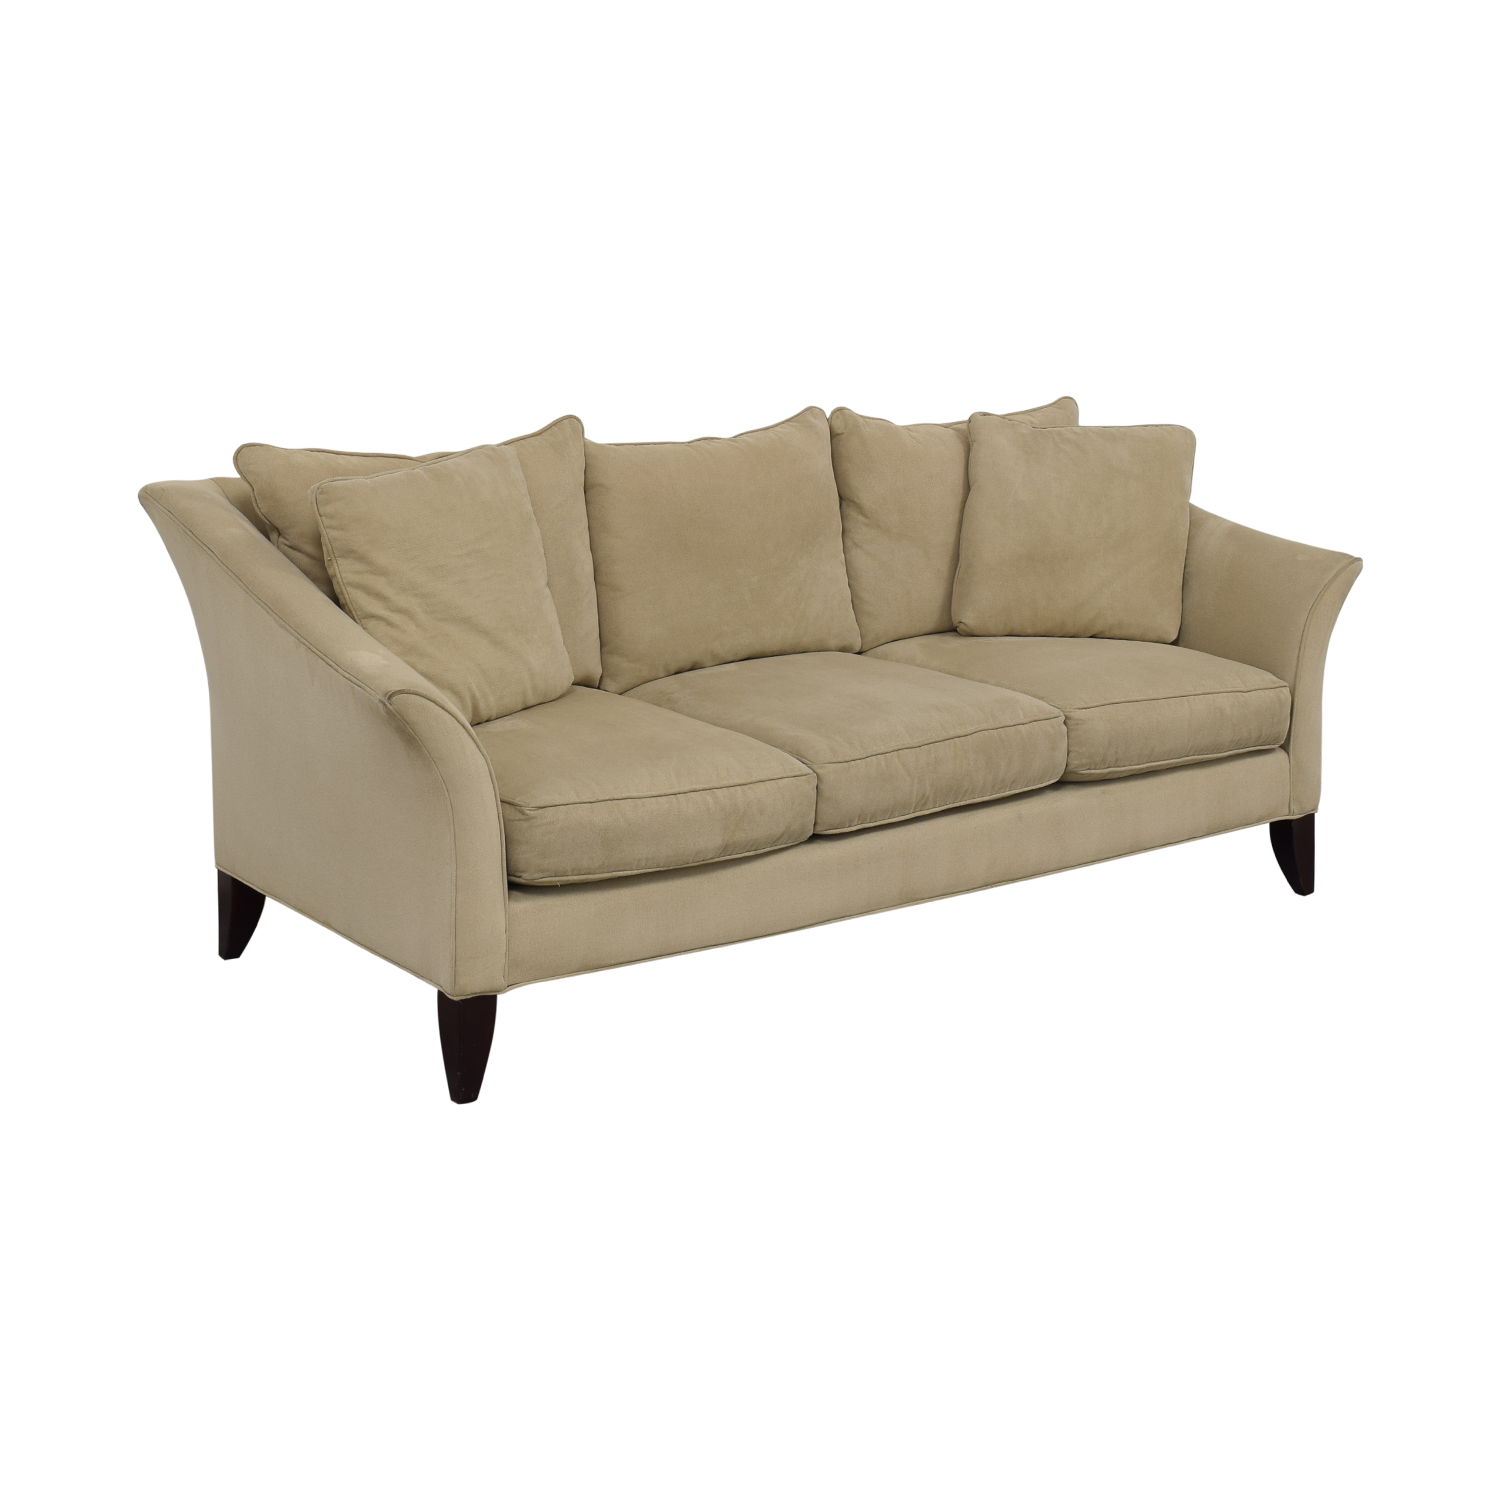 Maurice Villency Maurice Villency Three Seater Sofa Classic Sofas